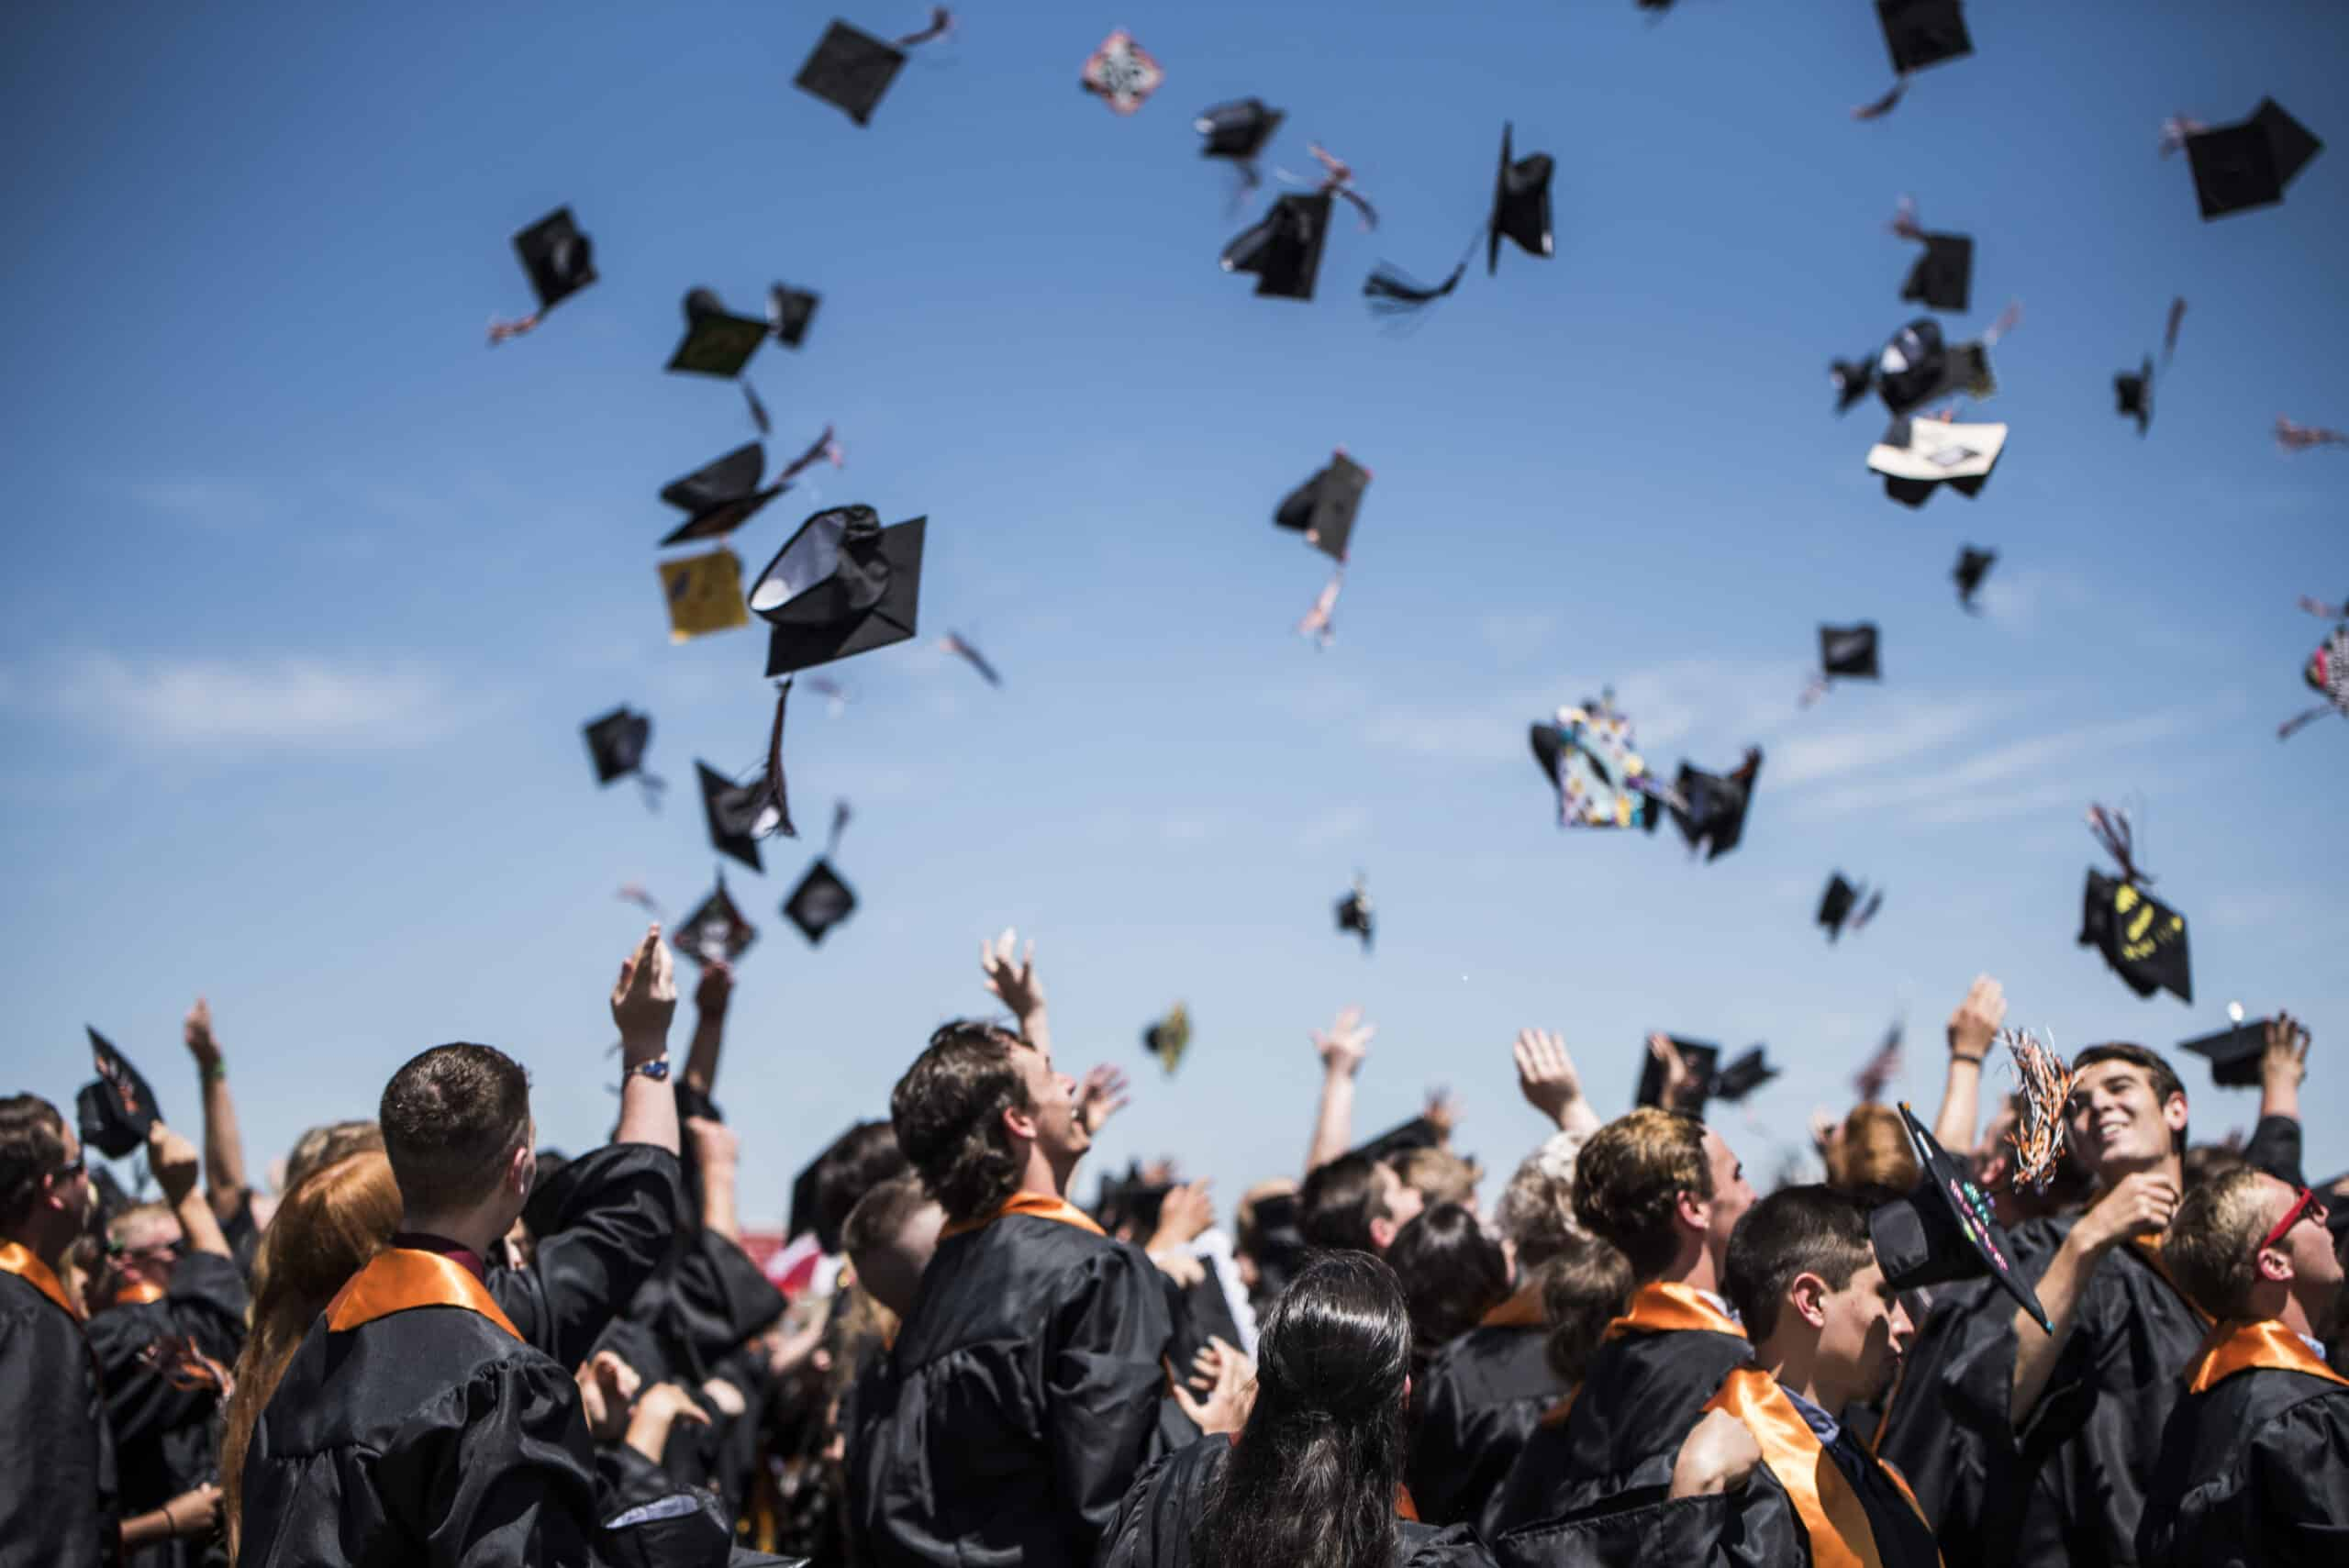 Students at high school graduation throwing their caps in the air